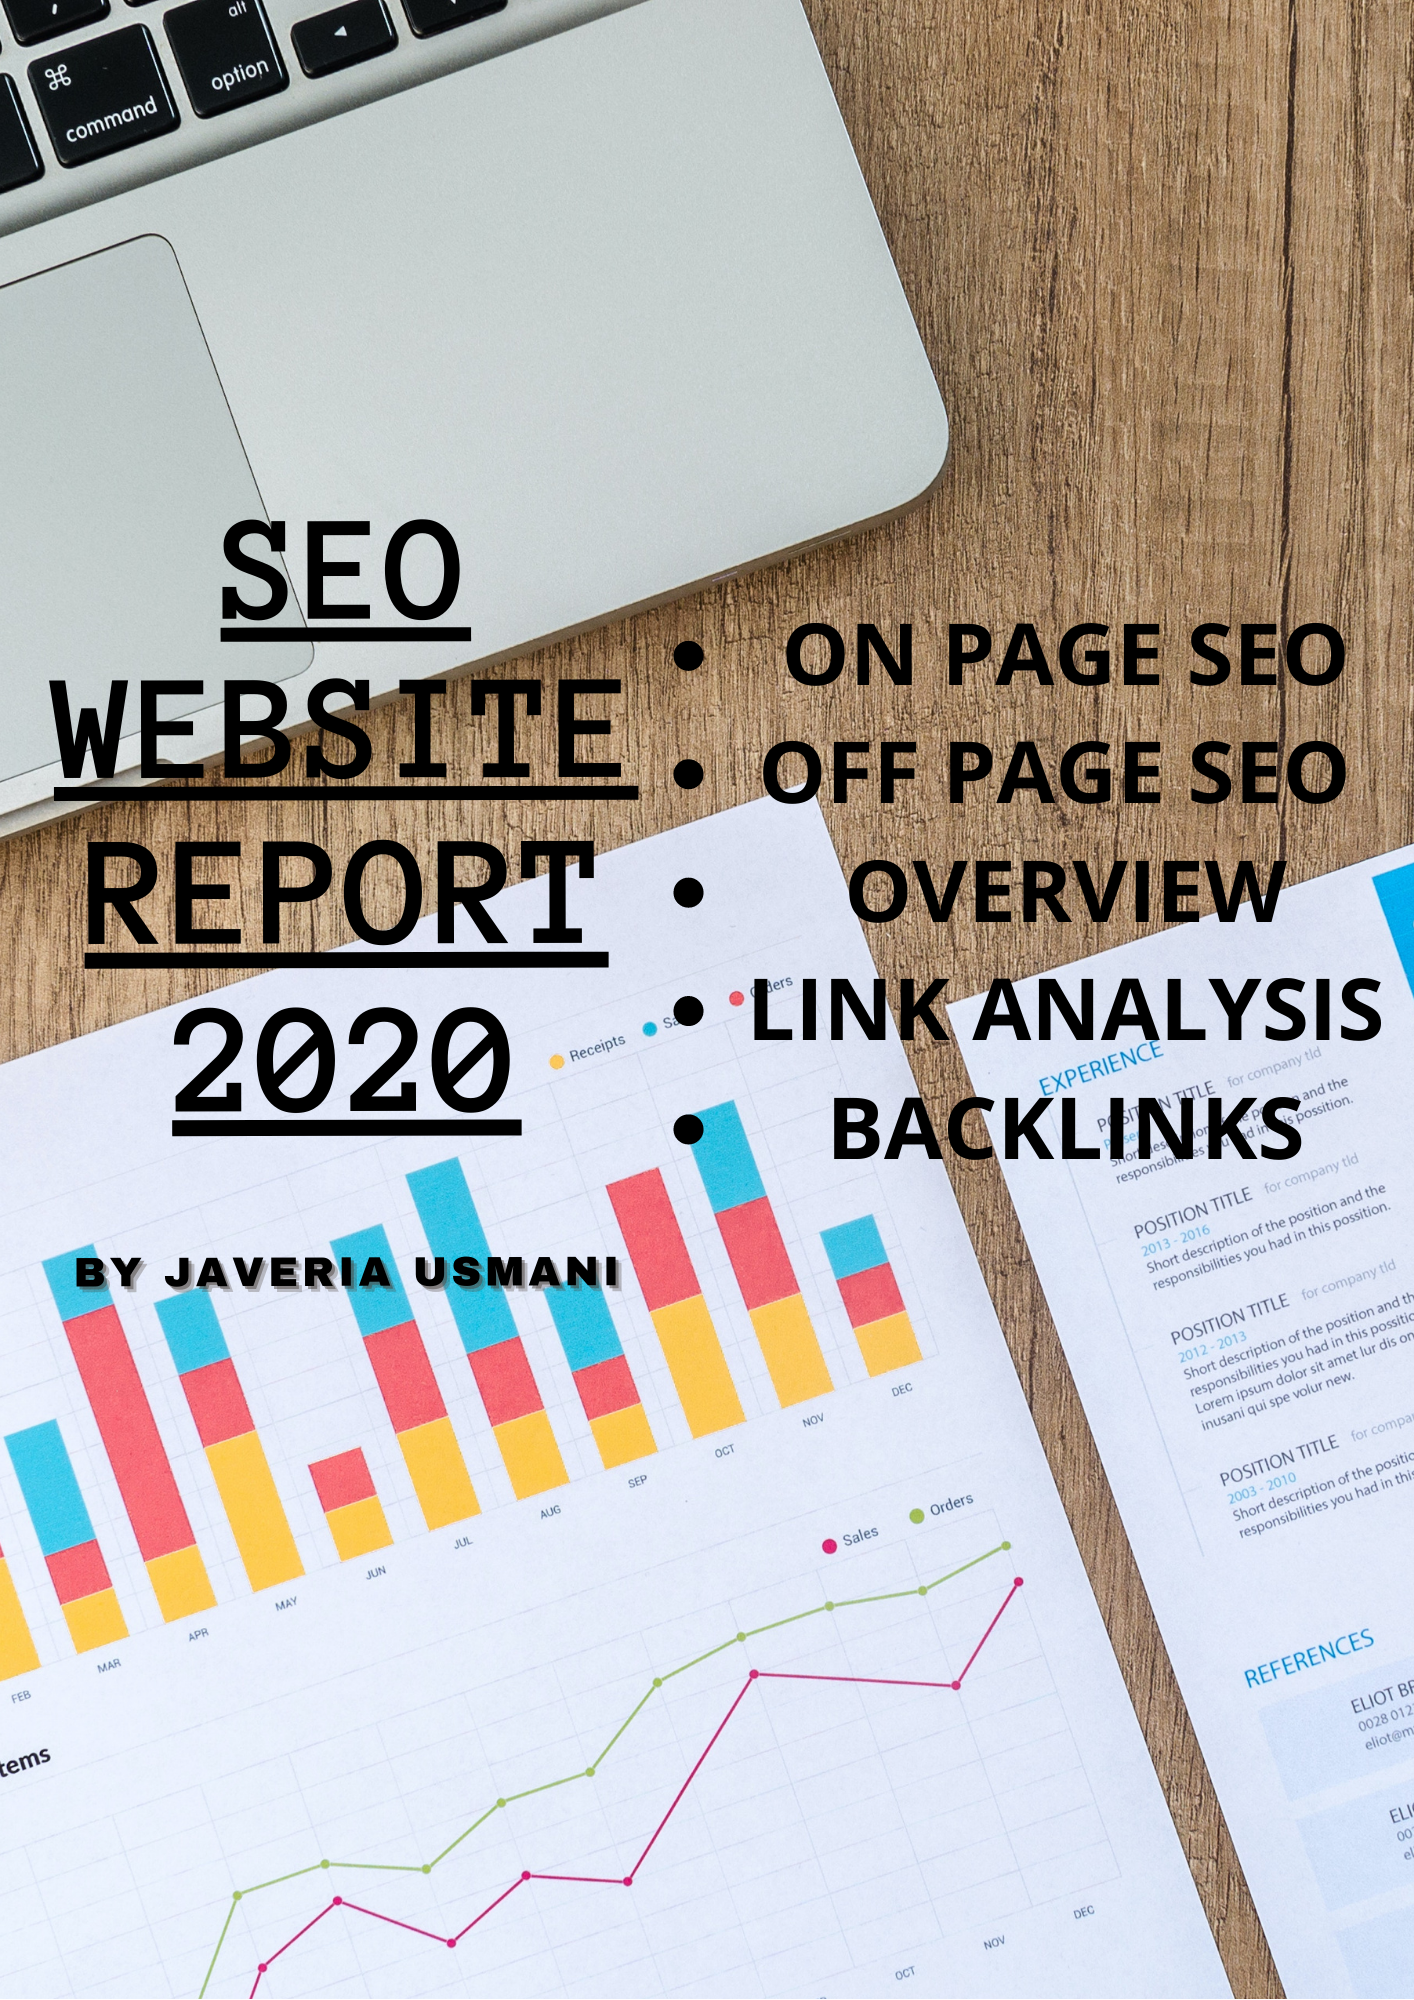 I will prepare a comprehensive SEO analysis web report in 6 hours